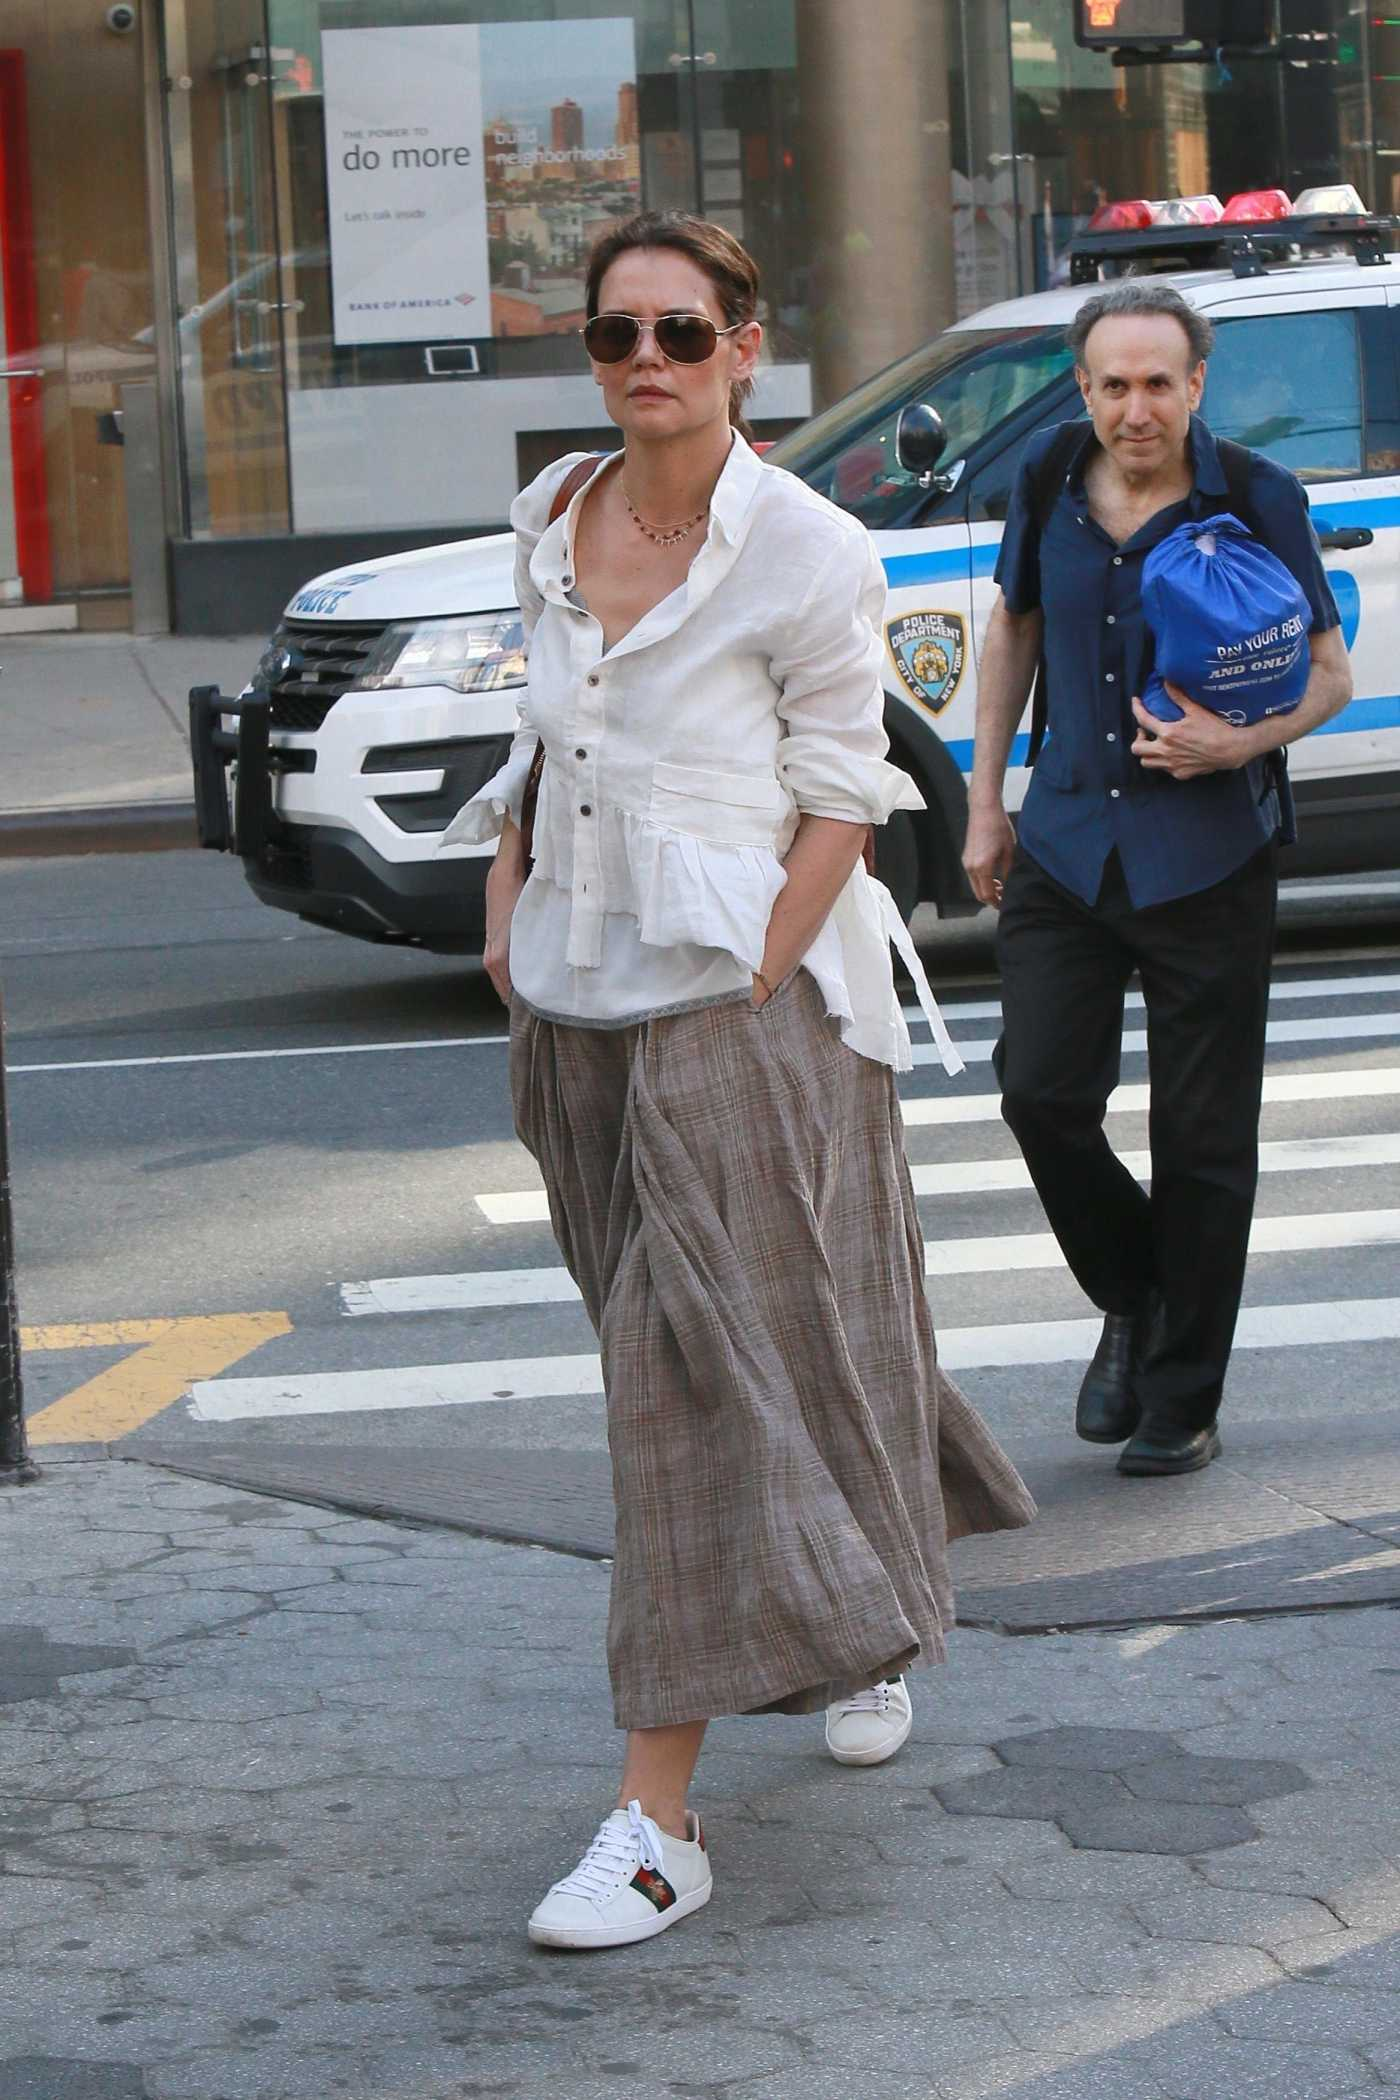 Katie Holmes in a White Blouse Heads into the Train Station in NYC 05/18/2019